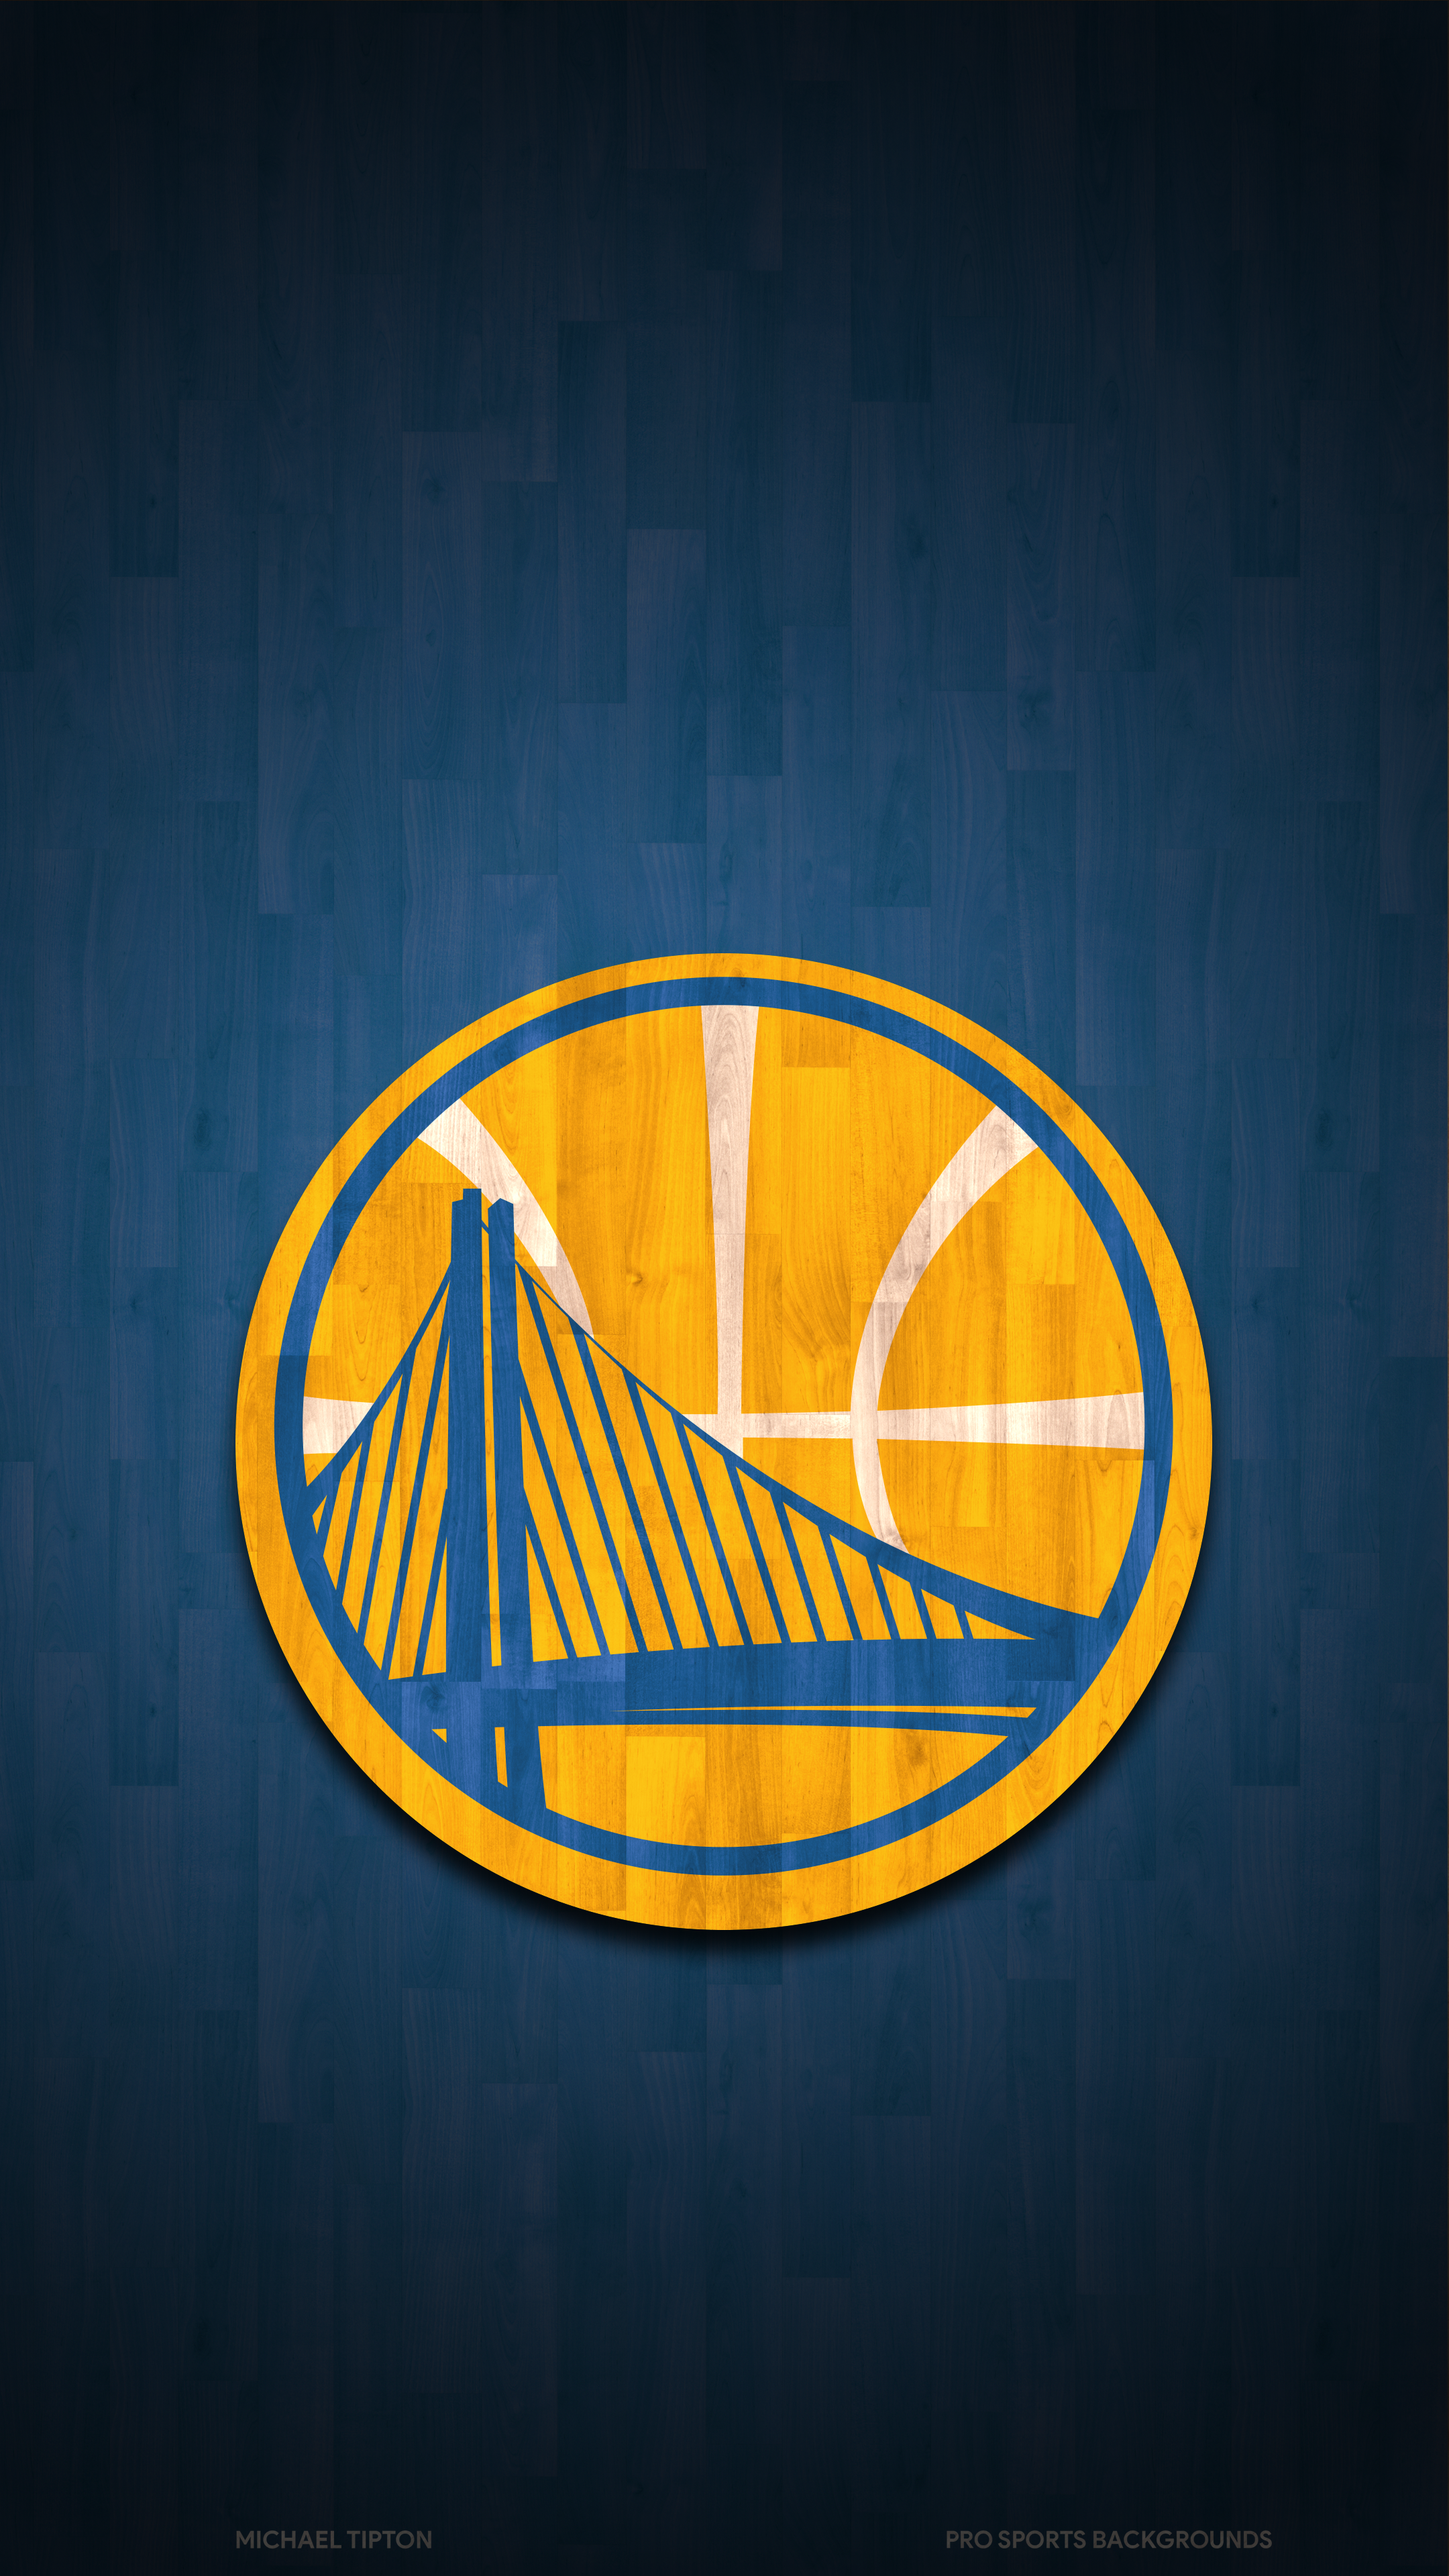 Golden State Warriors Wallpapers Pro Sports Backgrounds Golden State Warriors Wallpaper Warriors Wallpaper Golden State Warriors Logo